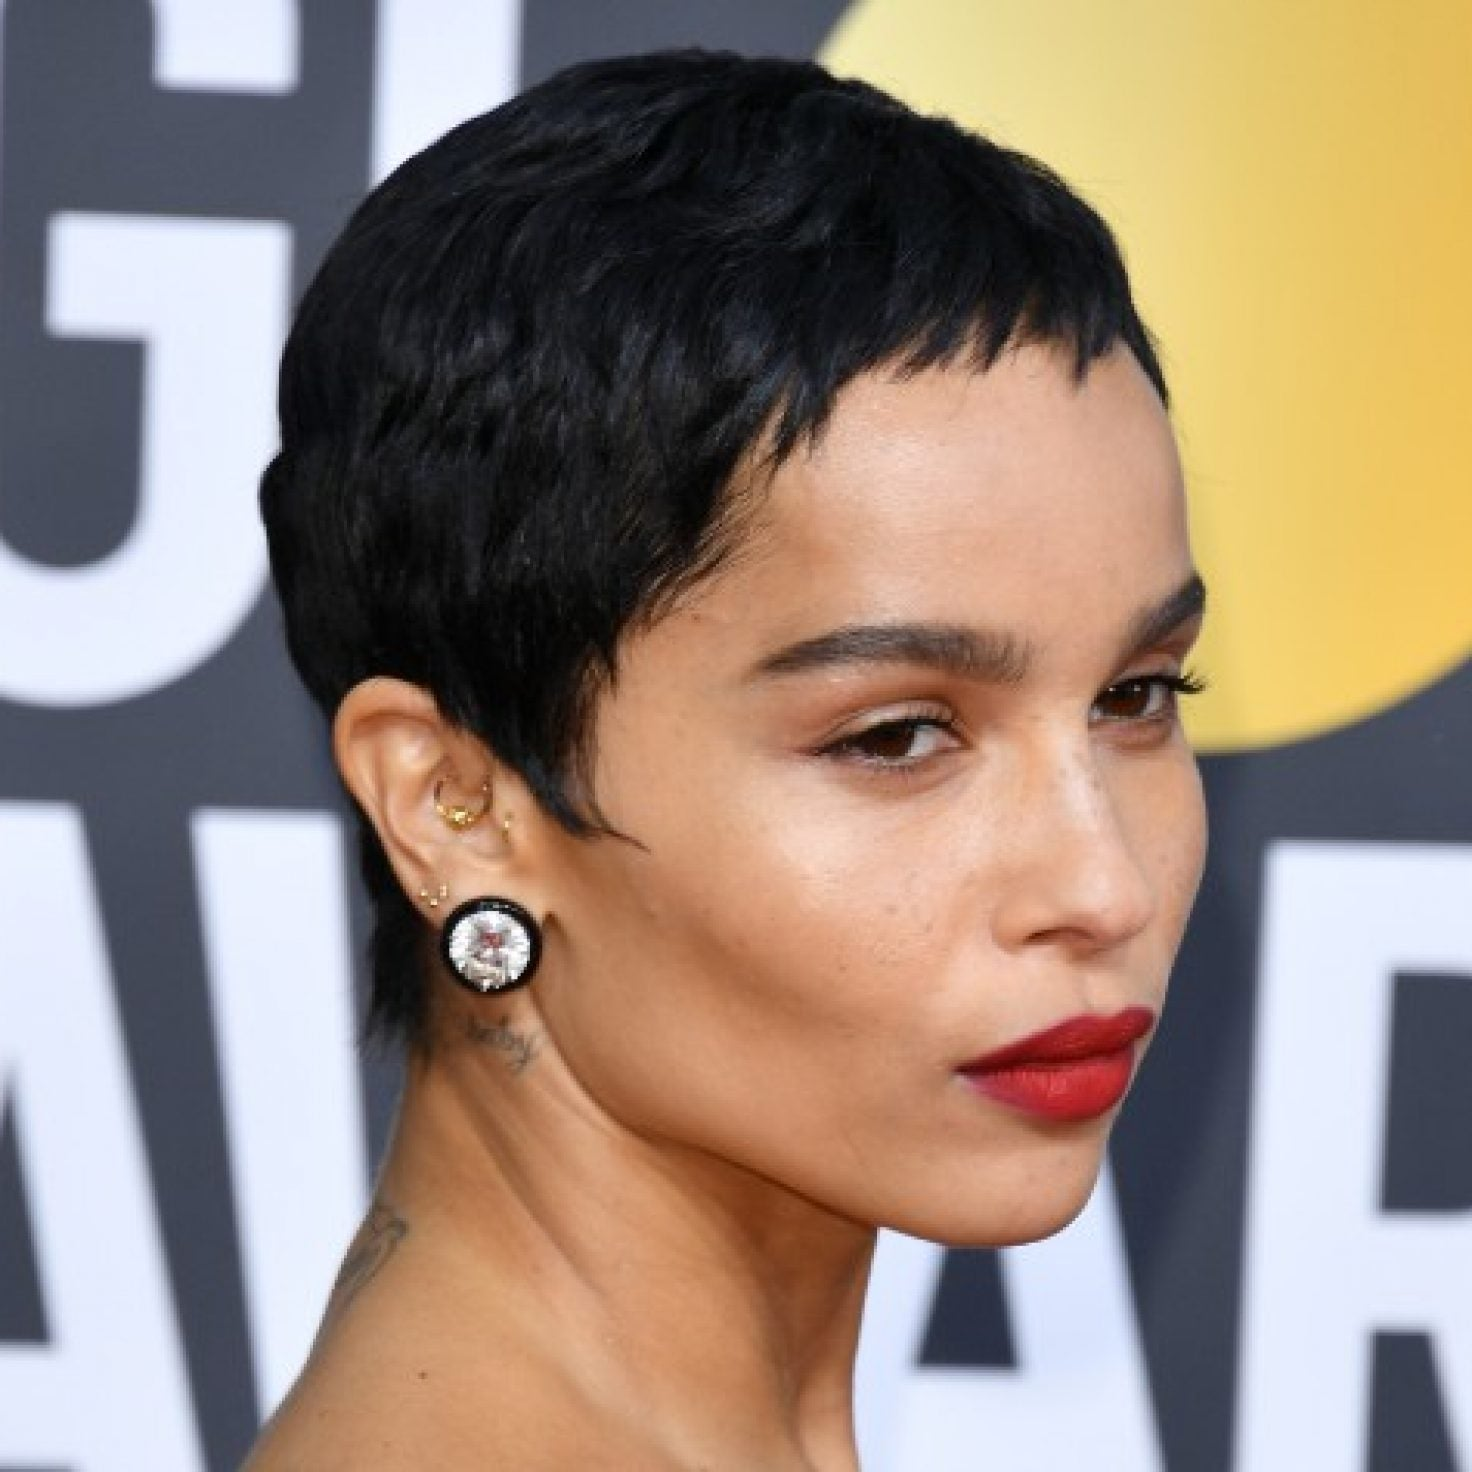 Short Hair Stole The Spotlight At The Golden Globes